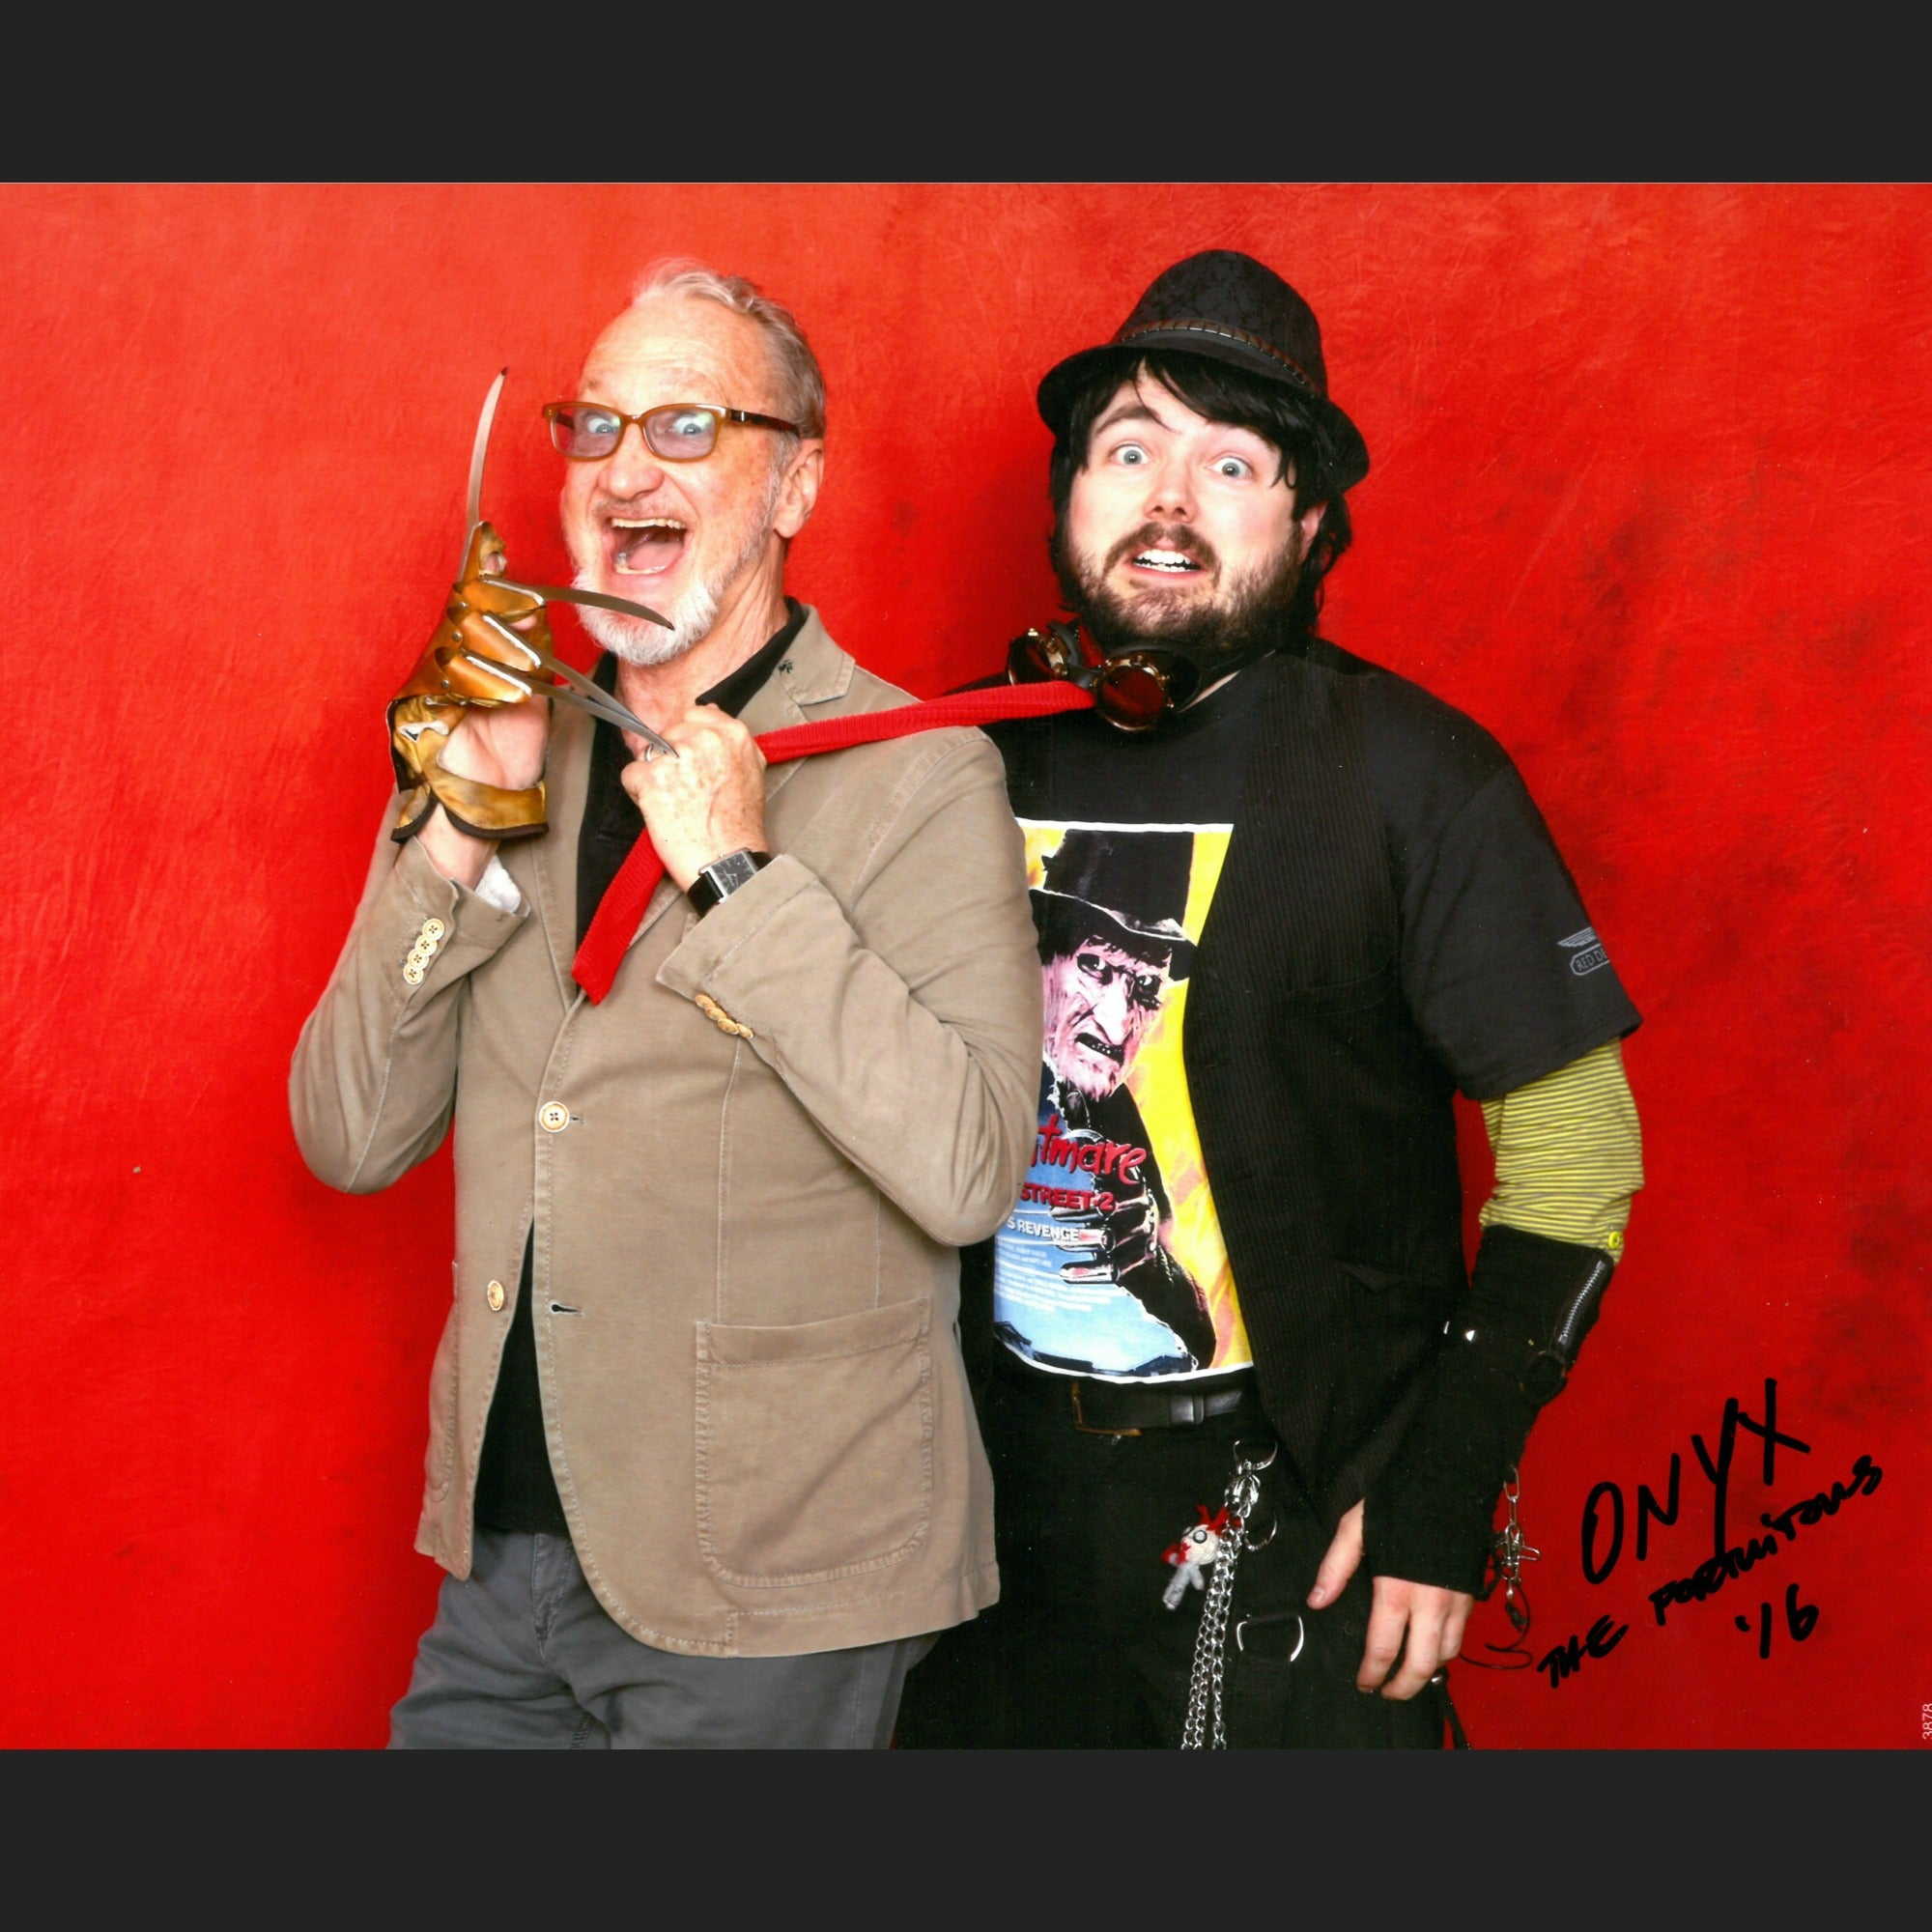 Onyx the Fortuitous and Robert Englund Professional Signed Photo - Plus FREE item!